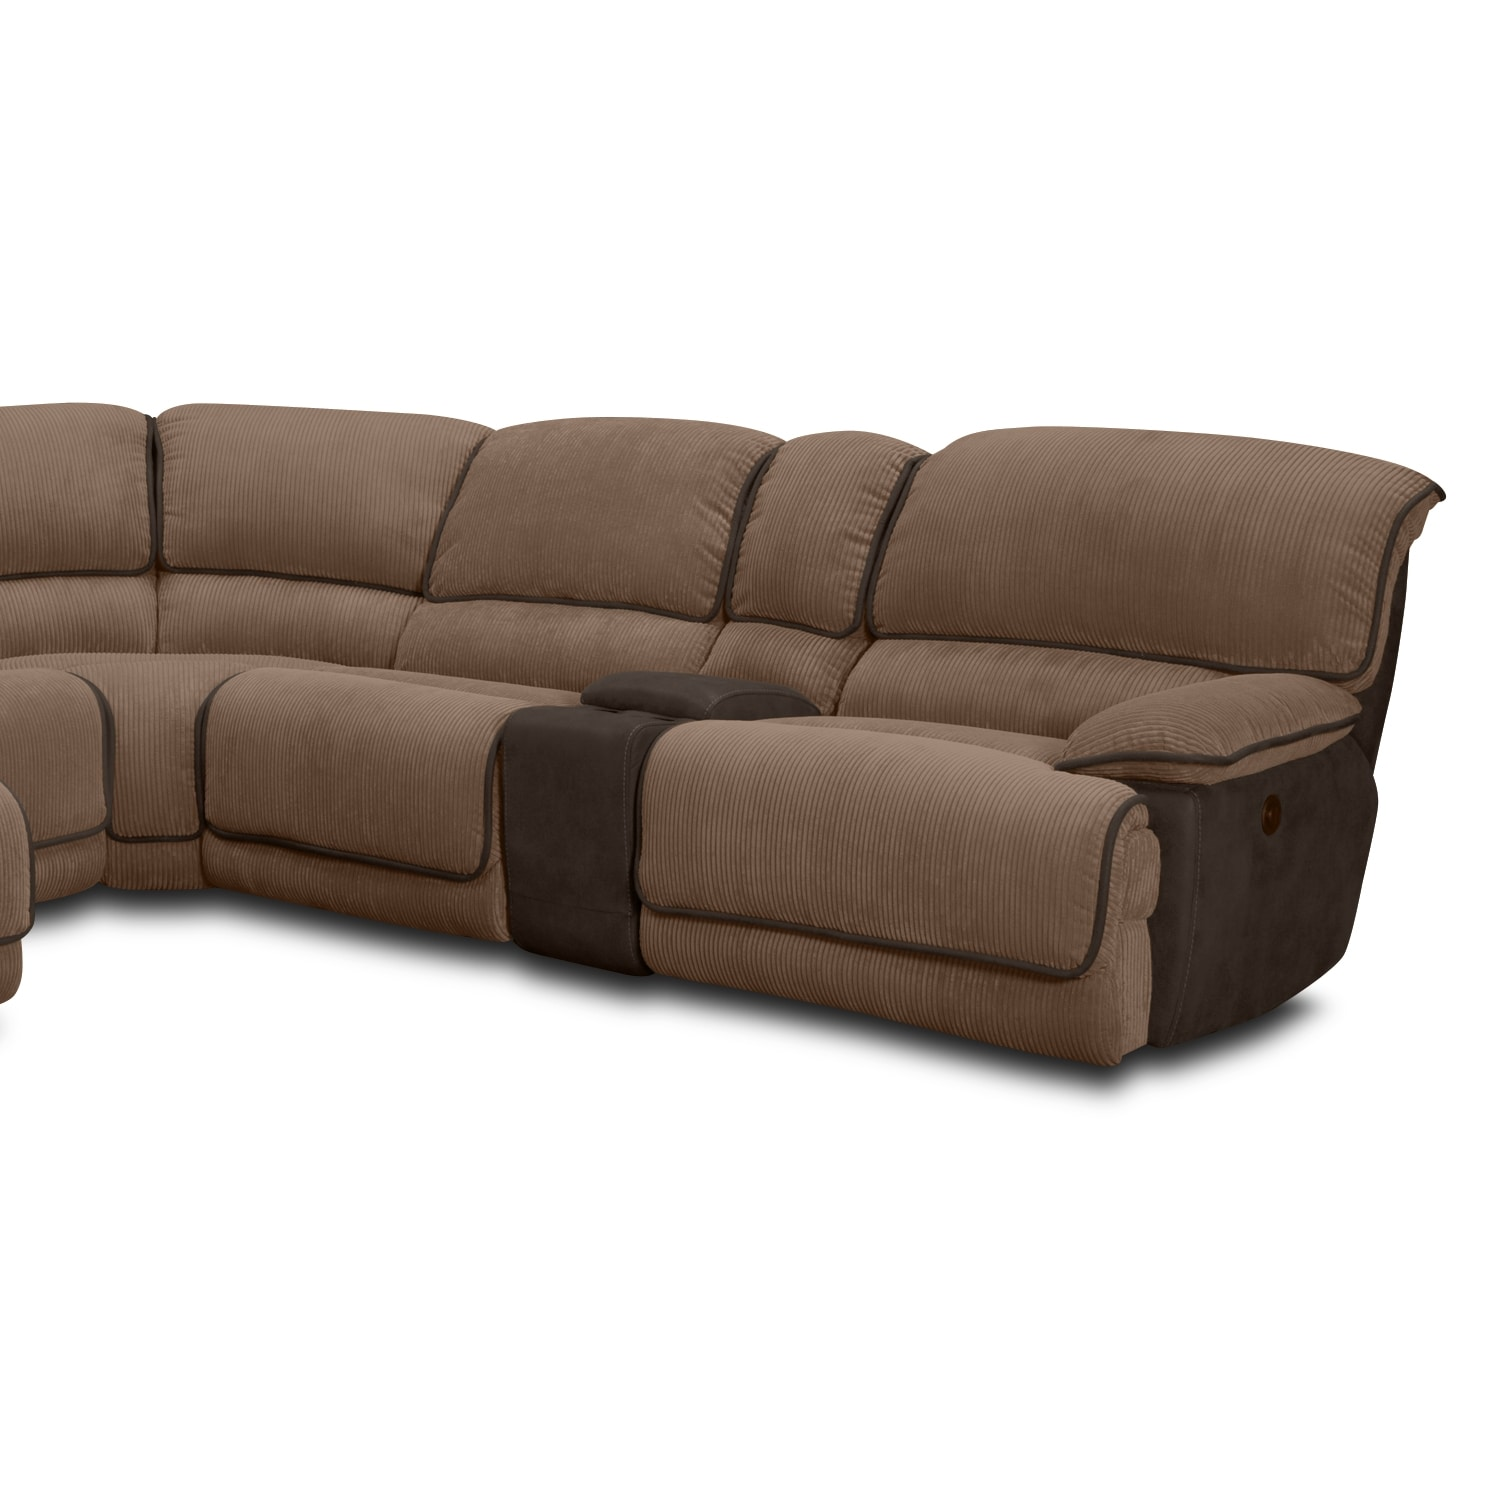 justin ii fabric reclining sectional sofa mart furniture warranty del mar upholstery 6 pc power